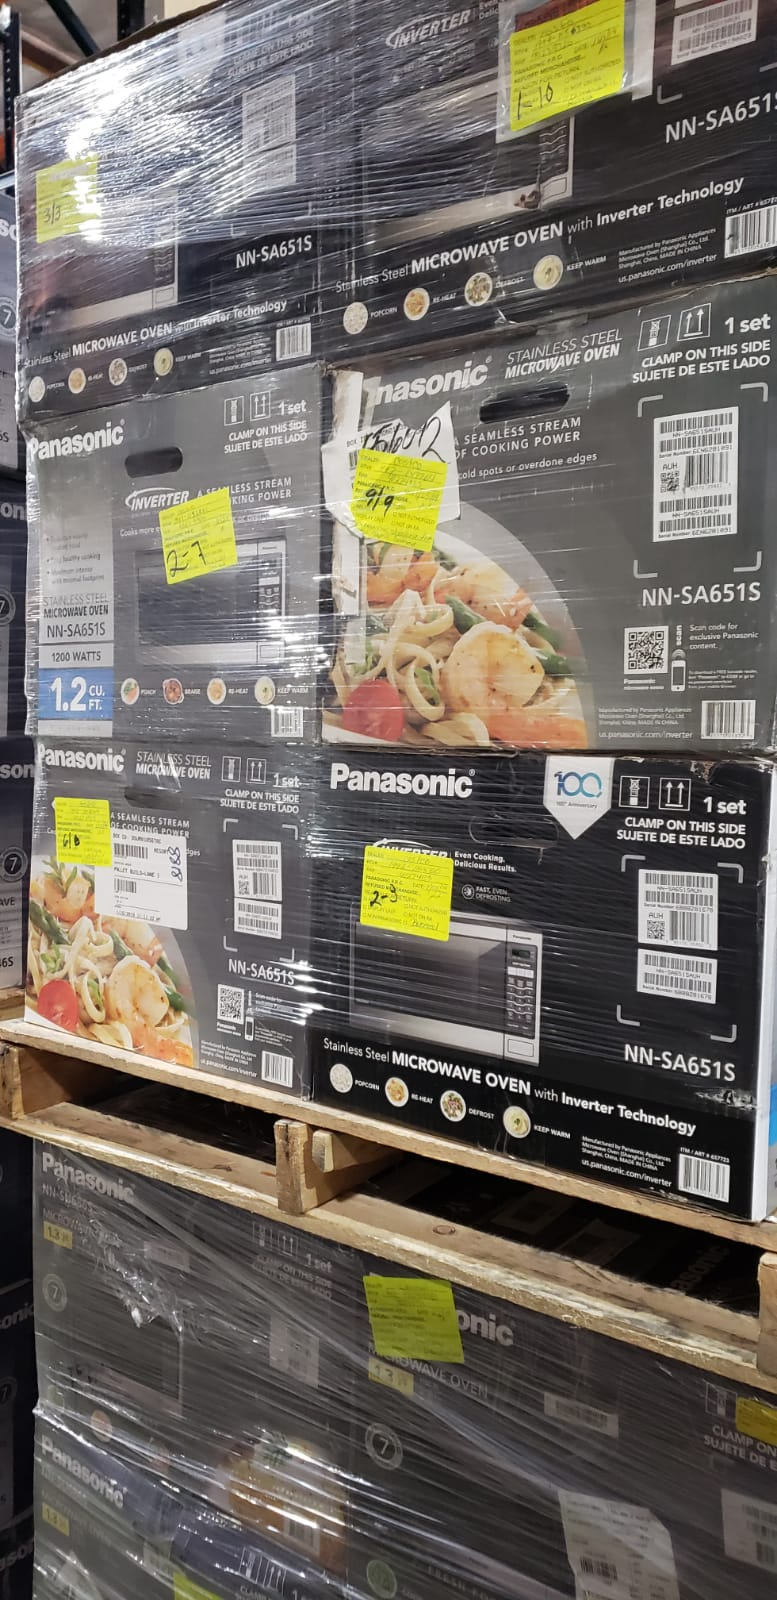 32616 - Panasonic Microwave Truckload USA